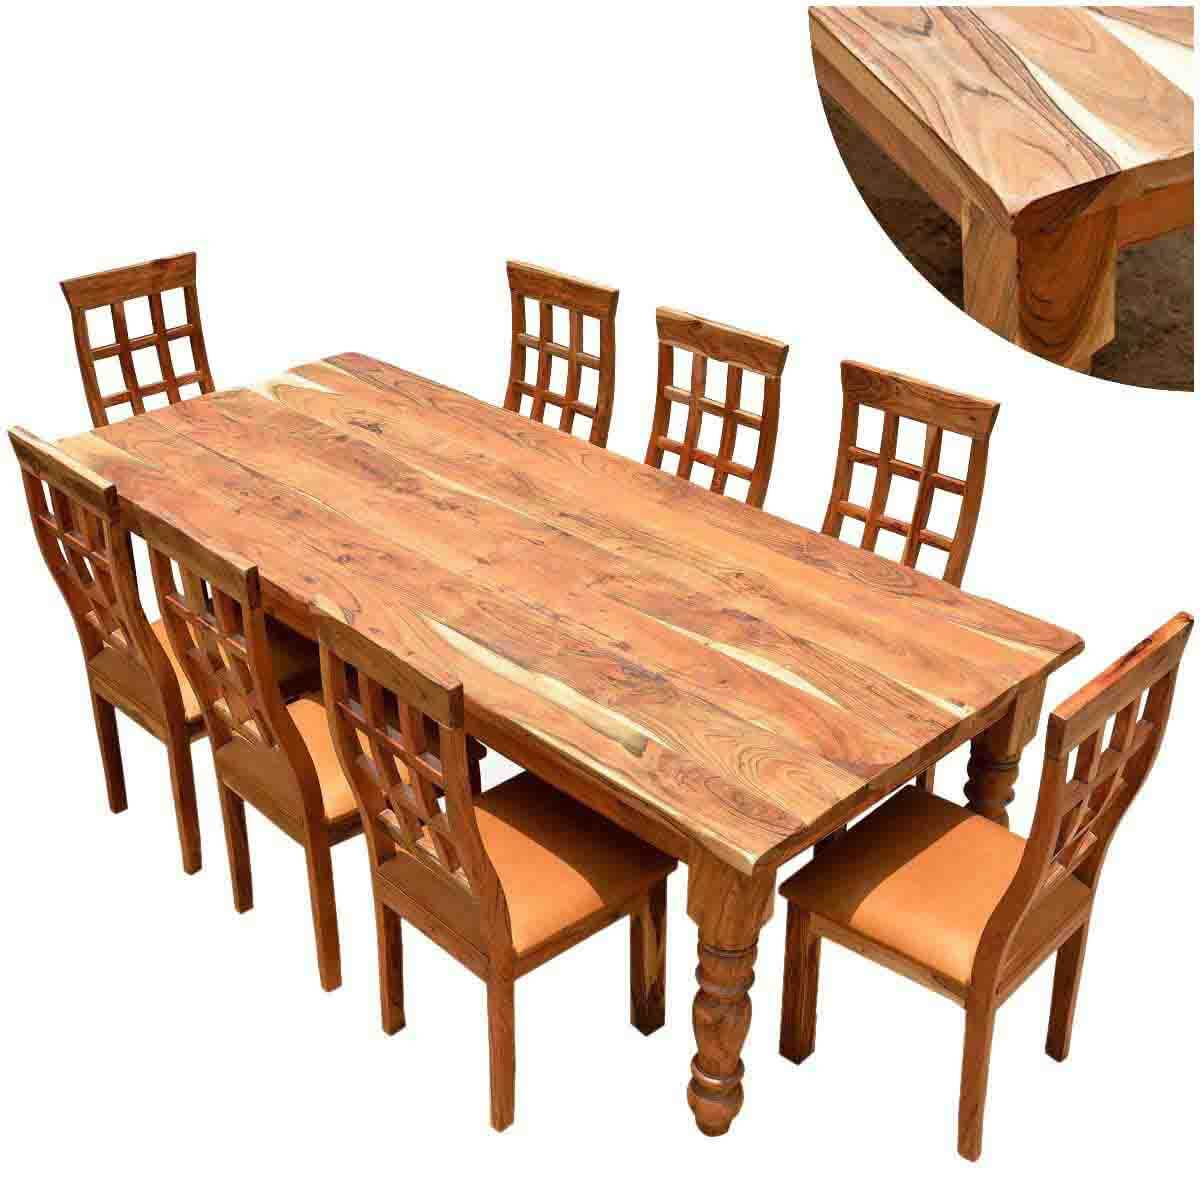 Rustic dining table and chair sets sierra living concepts for Wood dining room furniture